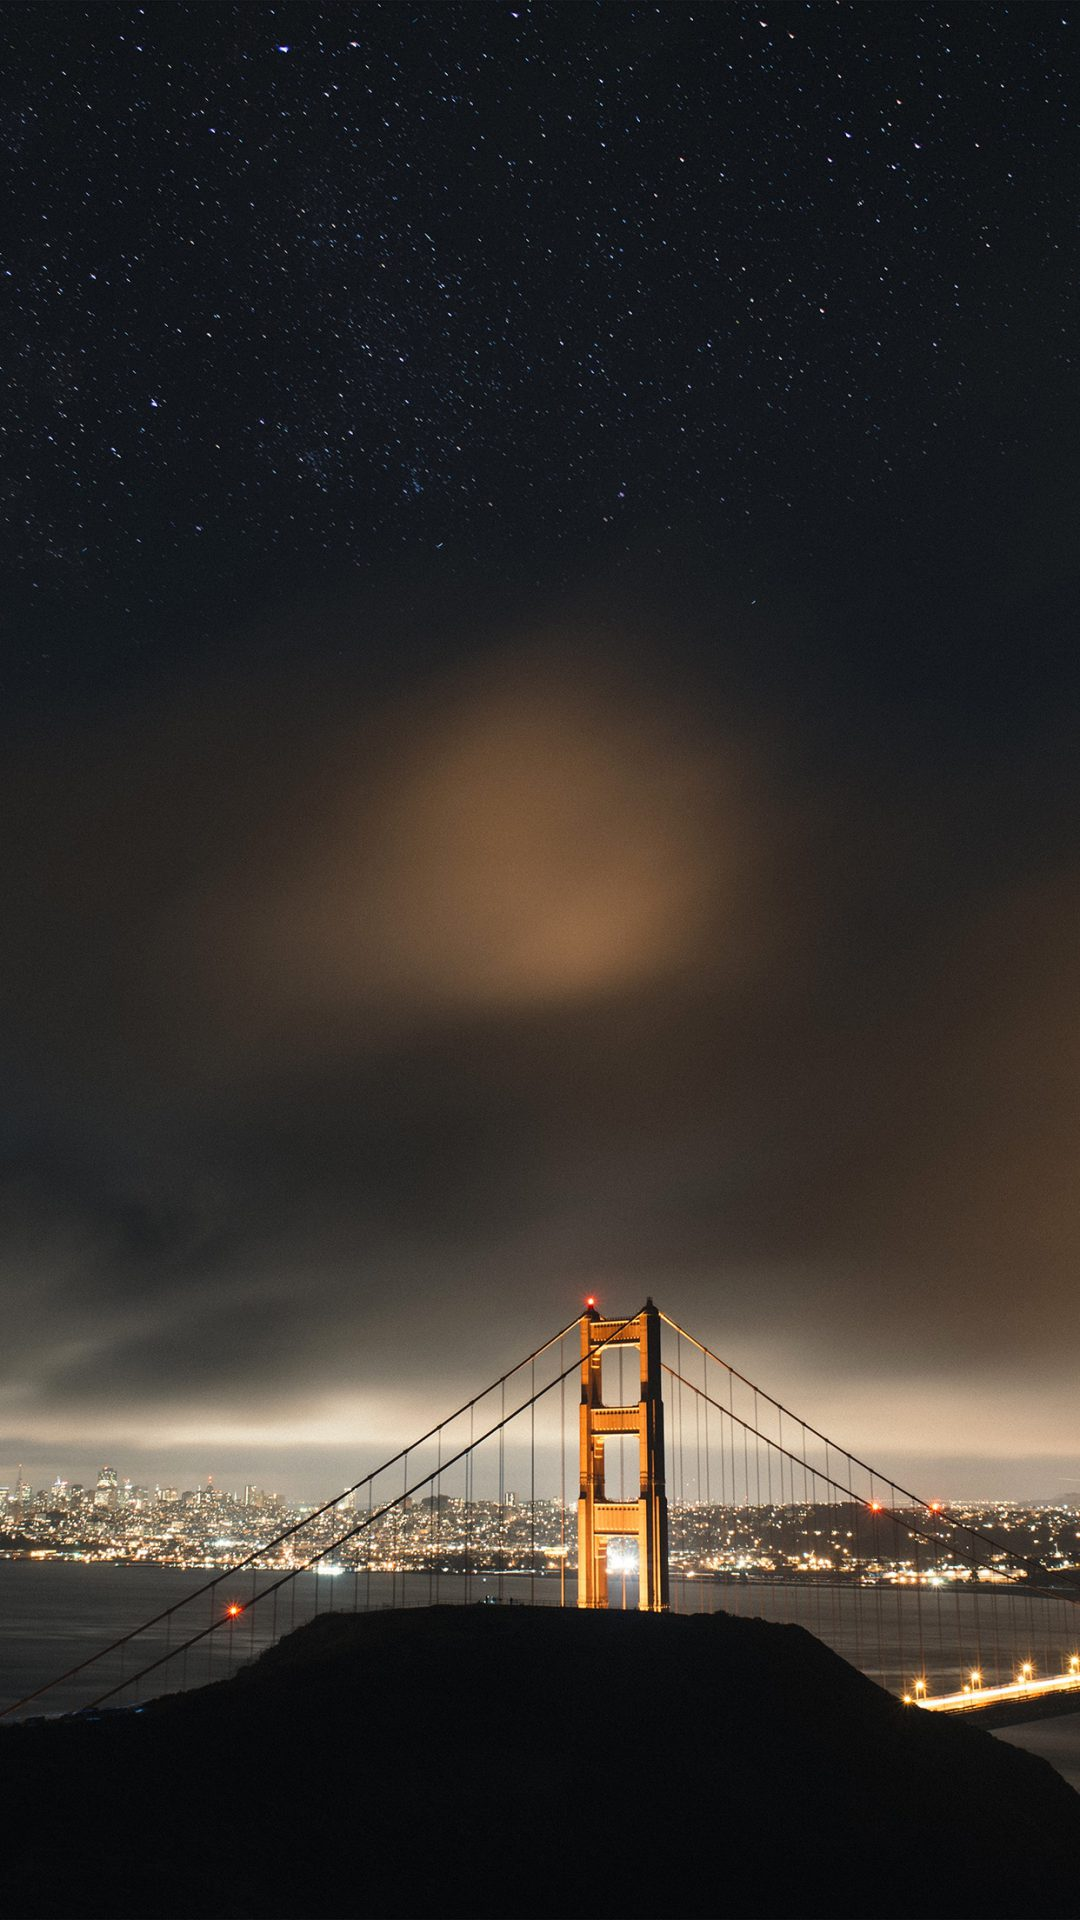 Golden Bridge Sky Star Milkyroad River City Night Dark